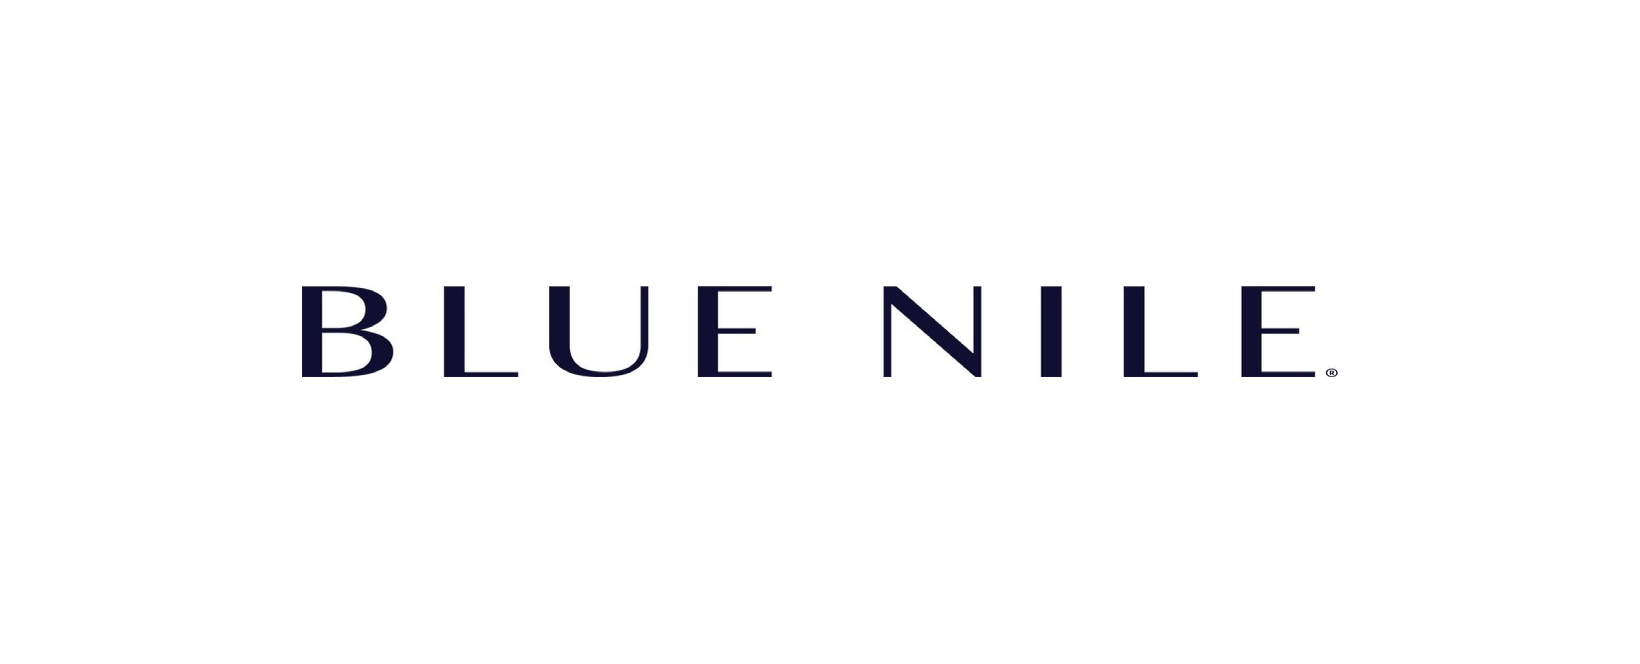 Blue Nile Review & Discounts – Adorn with Sparkly Diamonds!